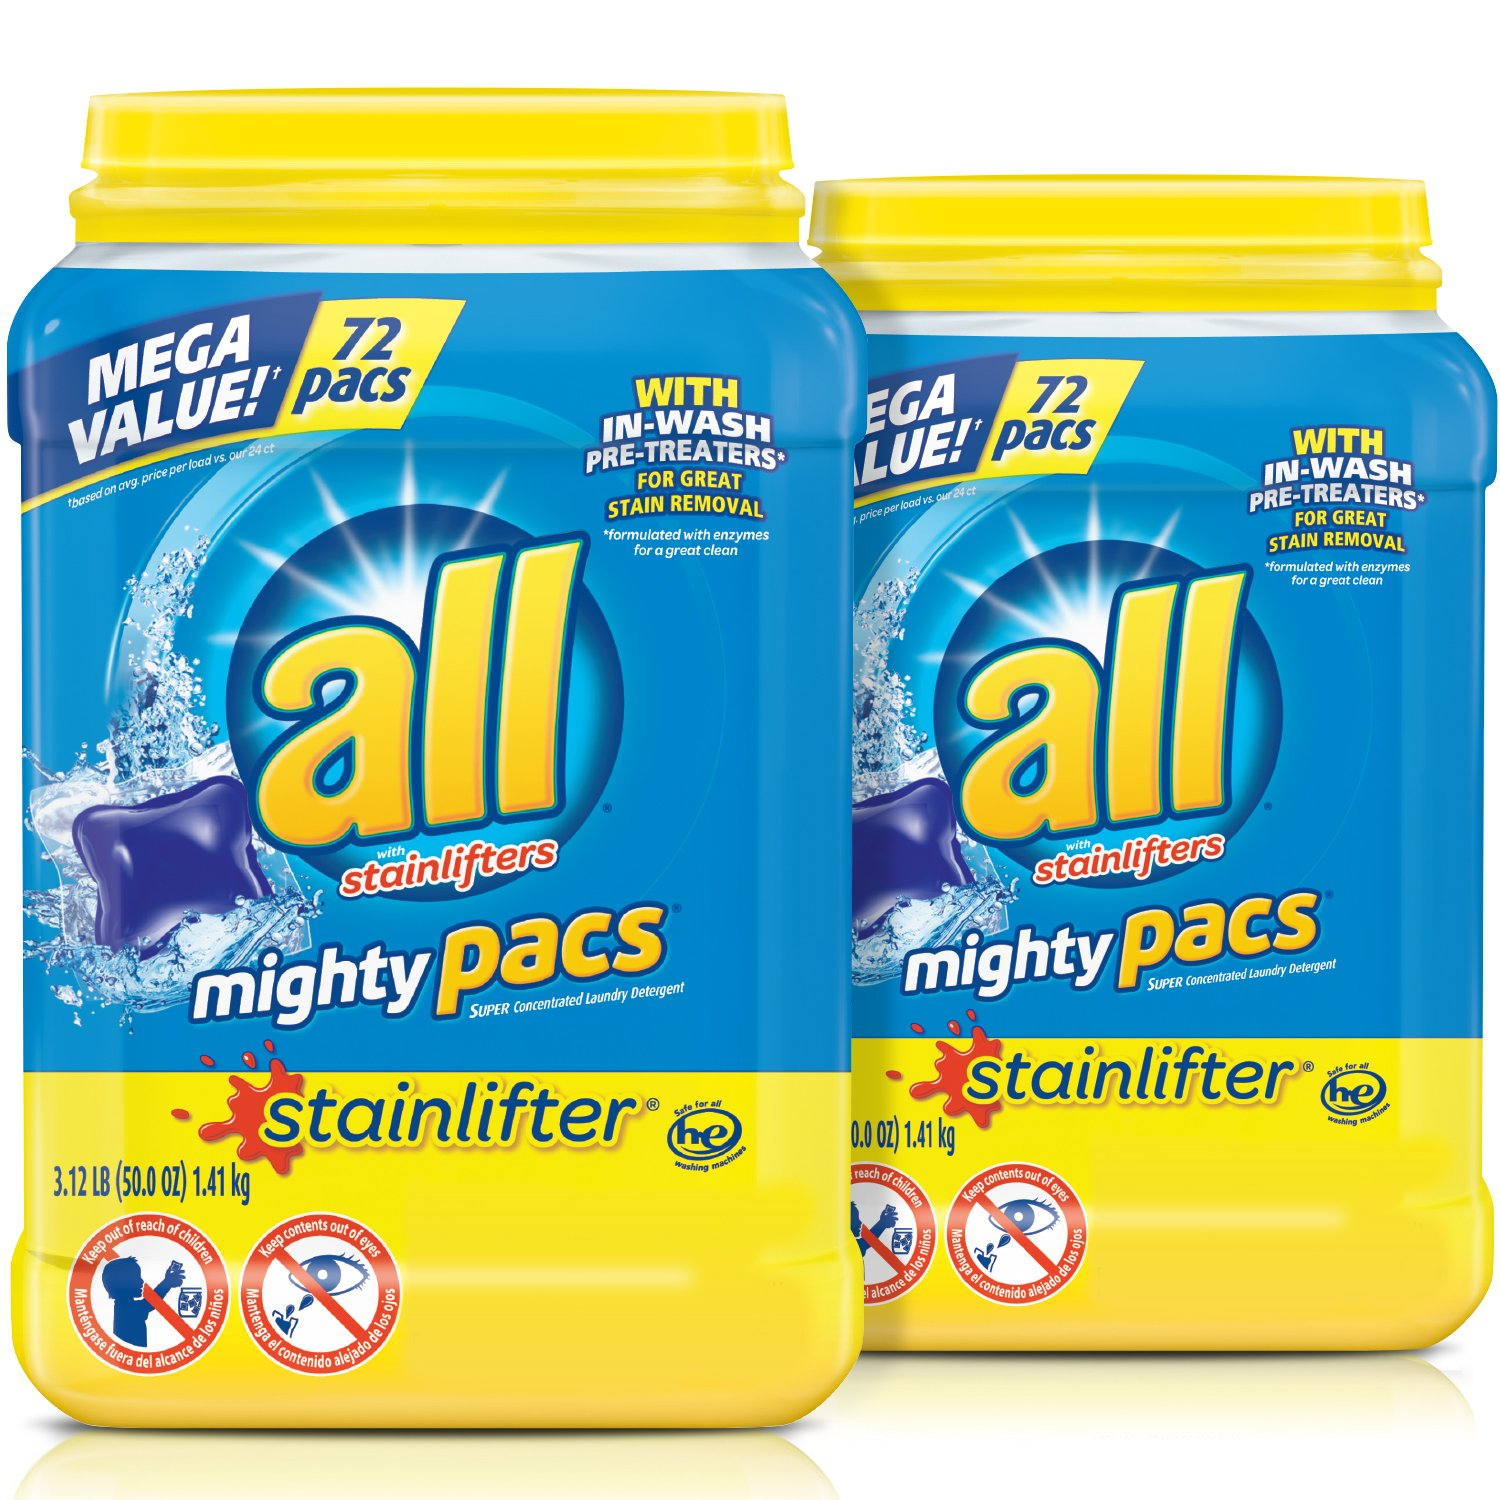 all Mighty Pacs Laundry Detergent, Stainlifter, 72 Count, 2 Tubs, 144 Total Loads by All (Image #1)